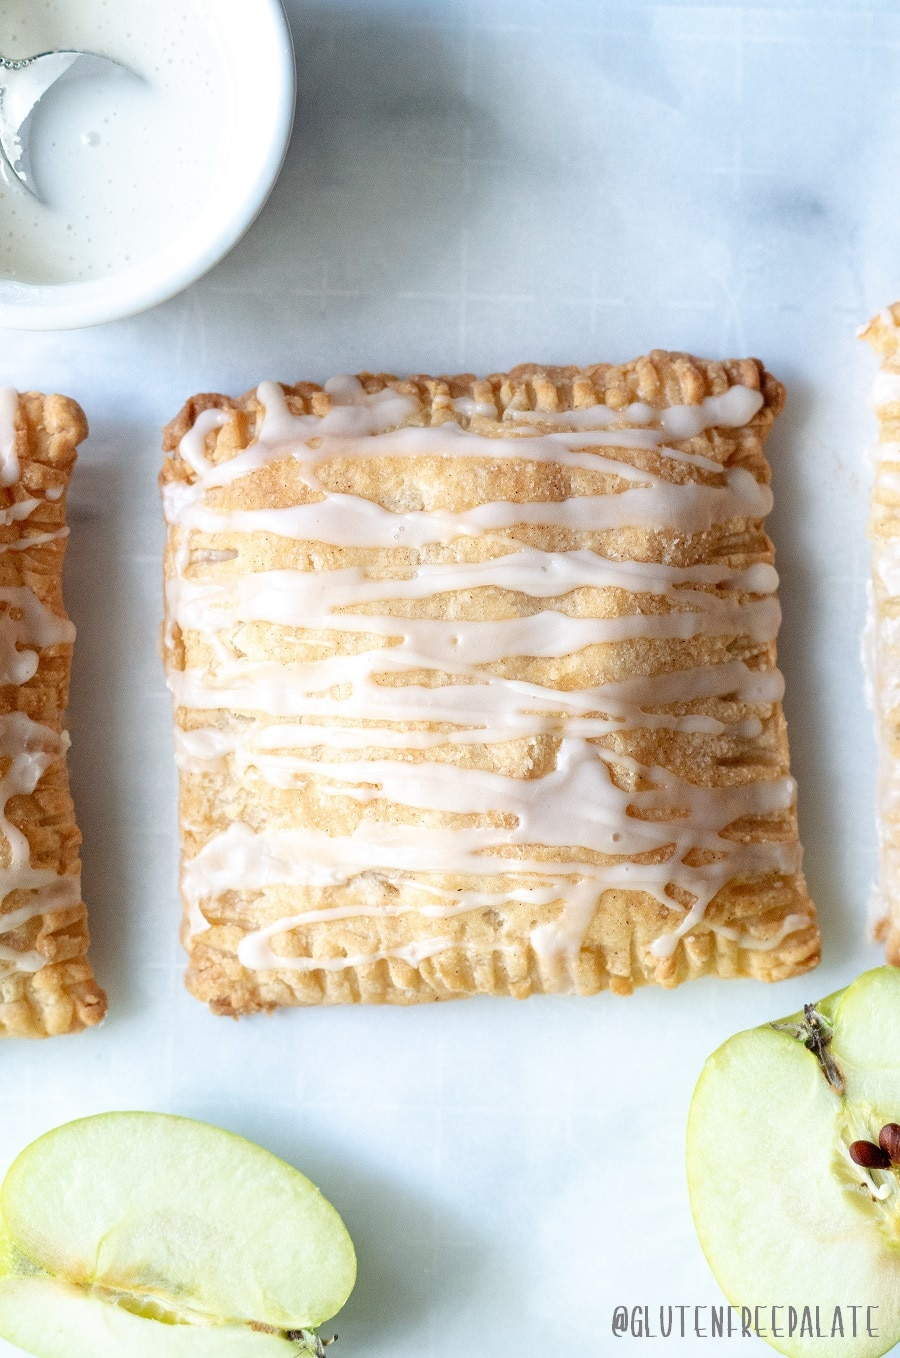 Easy Gluten-Free Apple Turnovers made with a flaky pastry dough, filled with apples and spices, and topped with a sweet glaze.